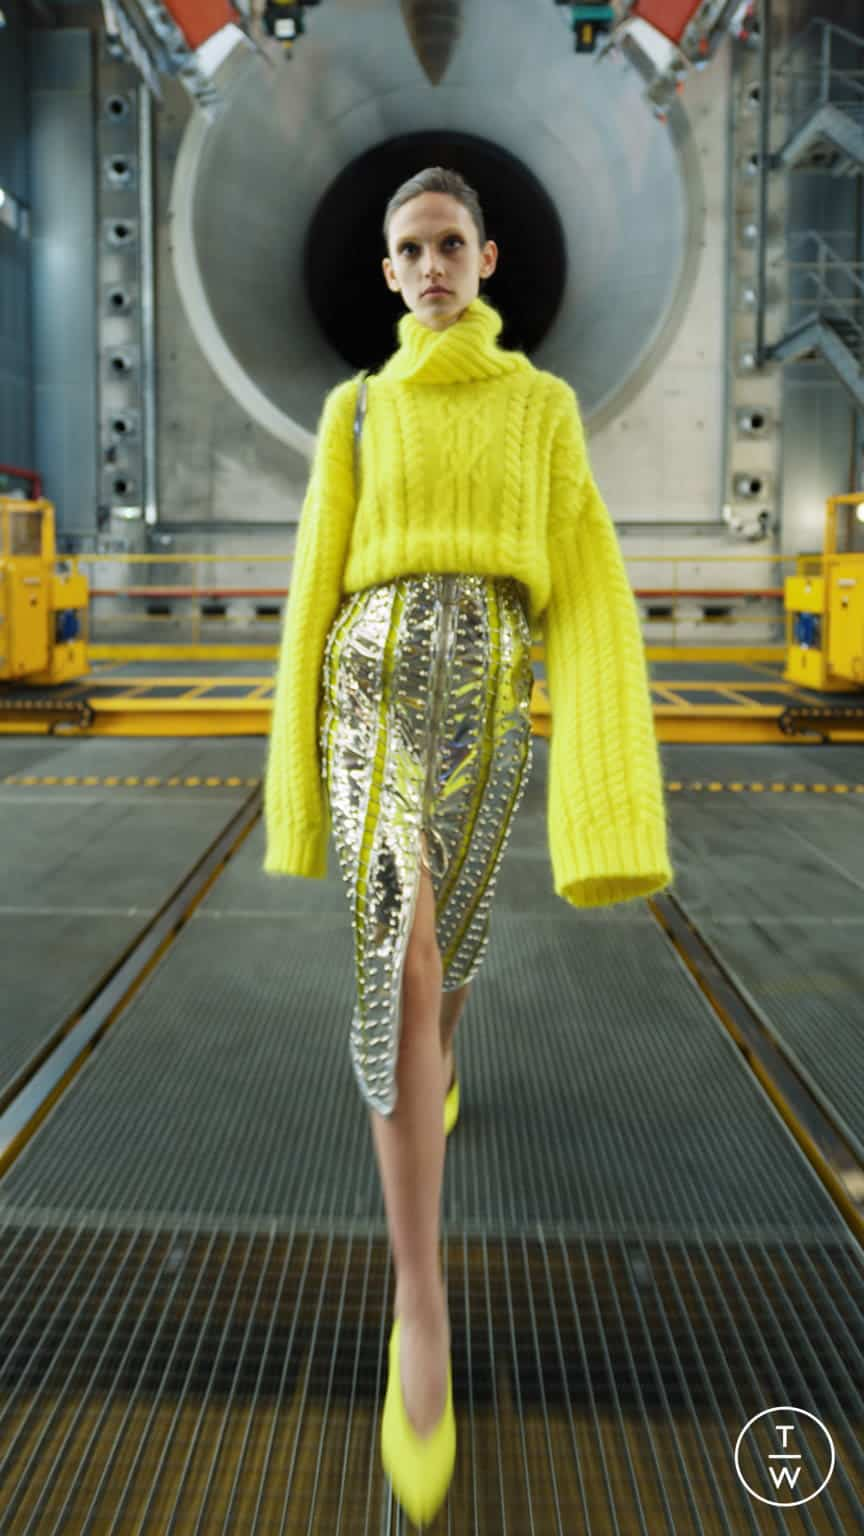 BALMAIN FALL/WINTER 2021 — Look 45